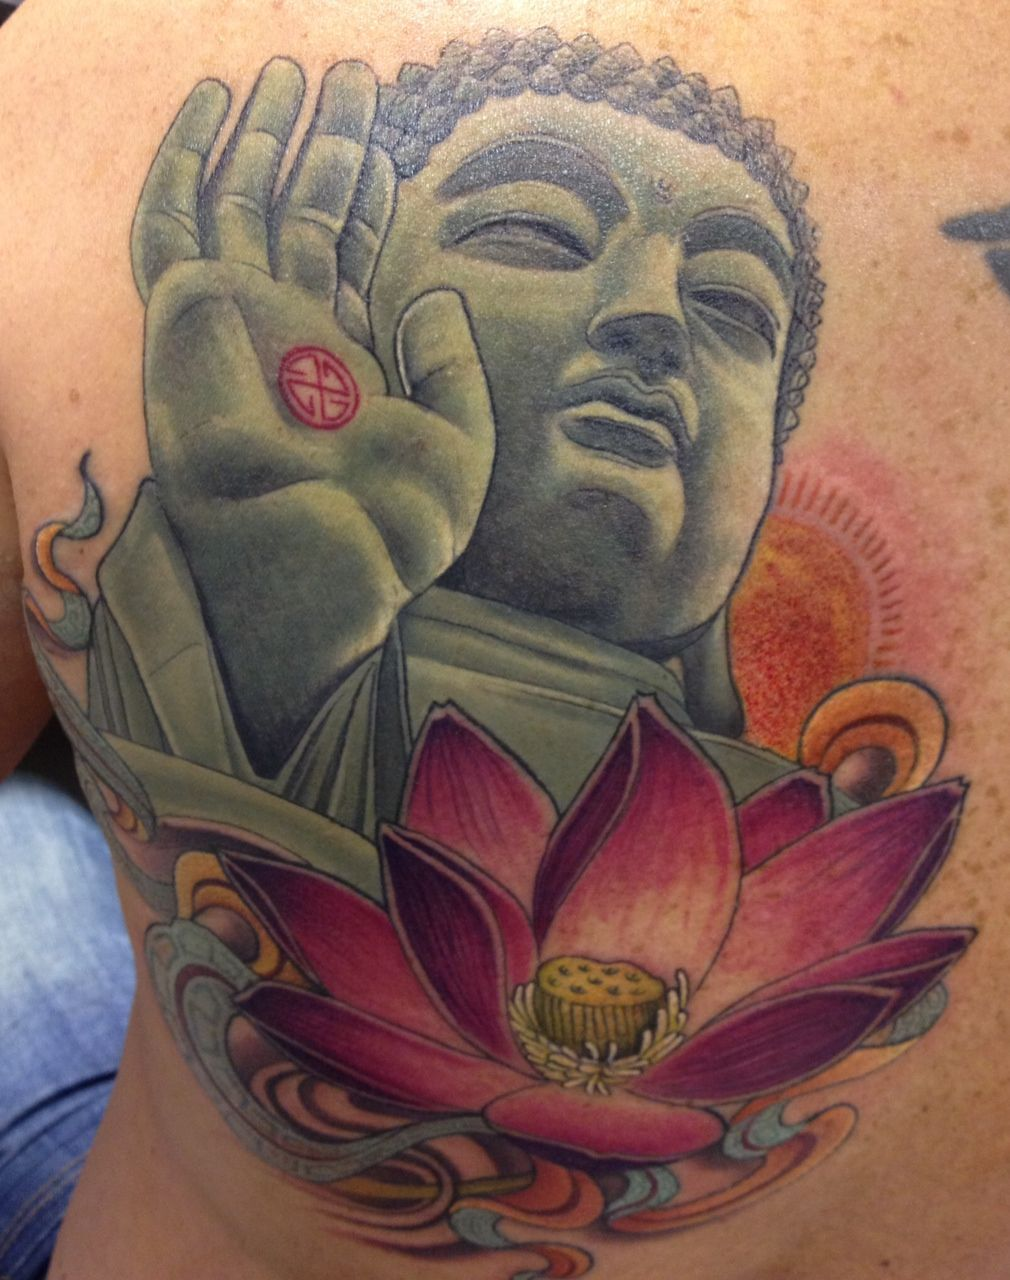 Face tattoos designs and ideas page 7 - Among The Many Lotus Tattoo Designs There Are The Beautiful White Lotus Flower Tattoo Designs That Particularly Hold Your Attention With Their Myriad